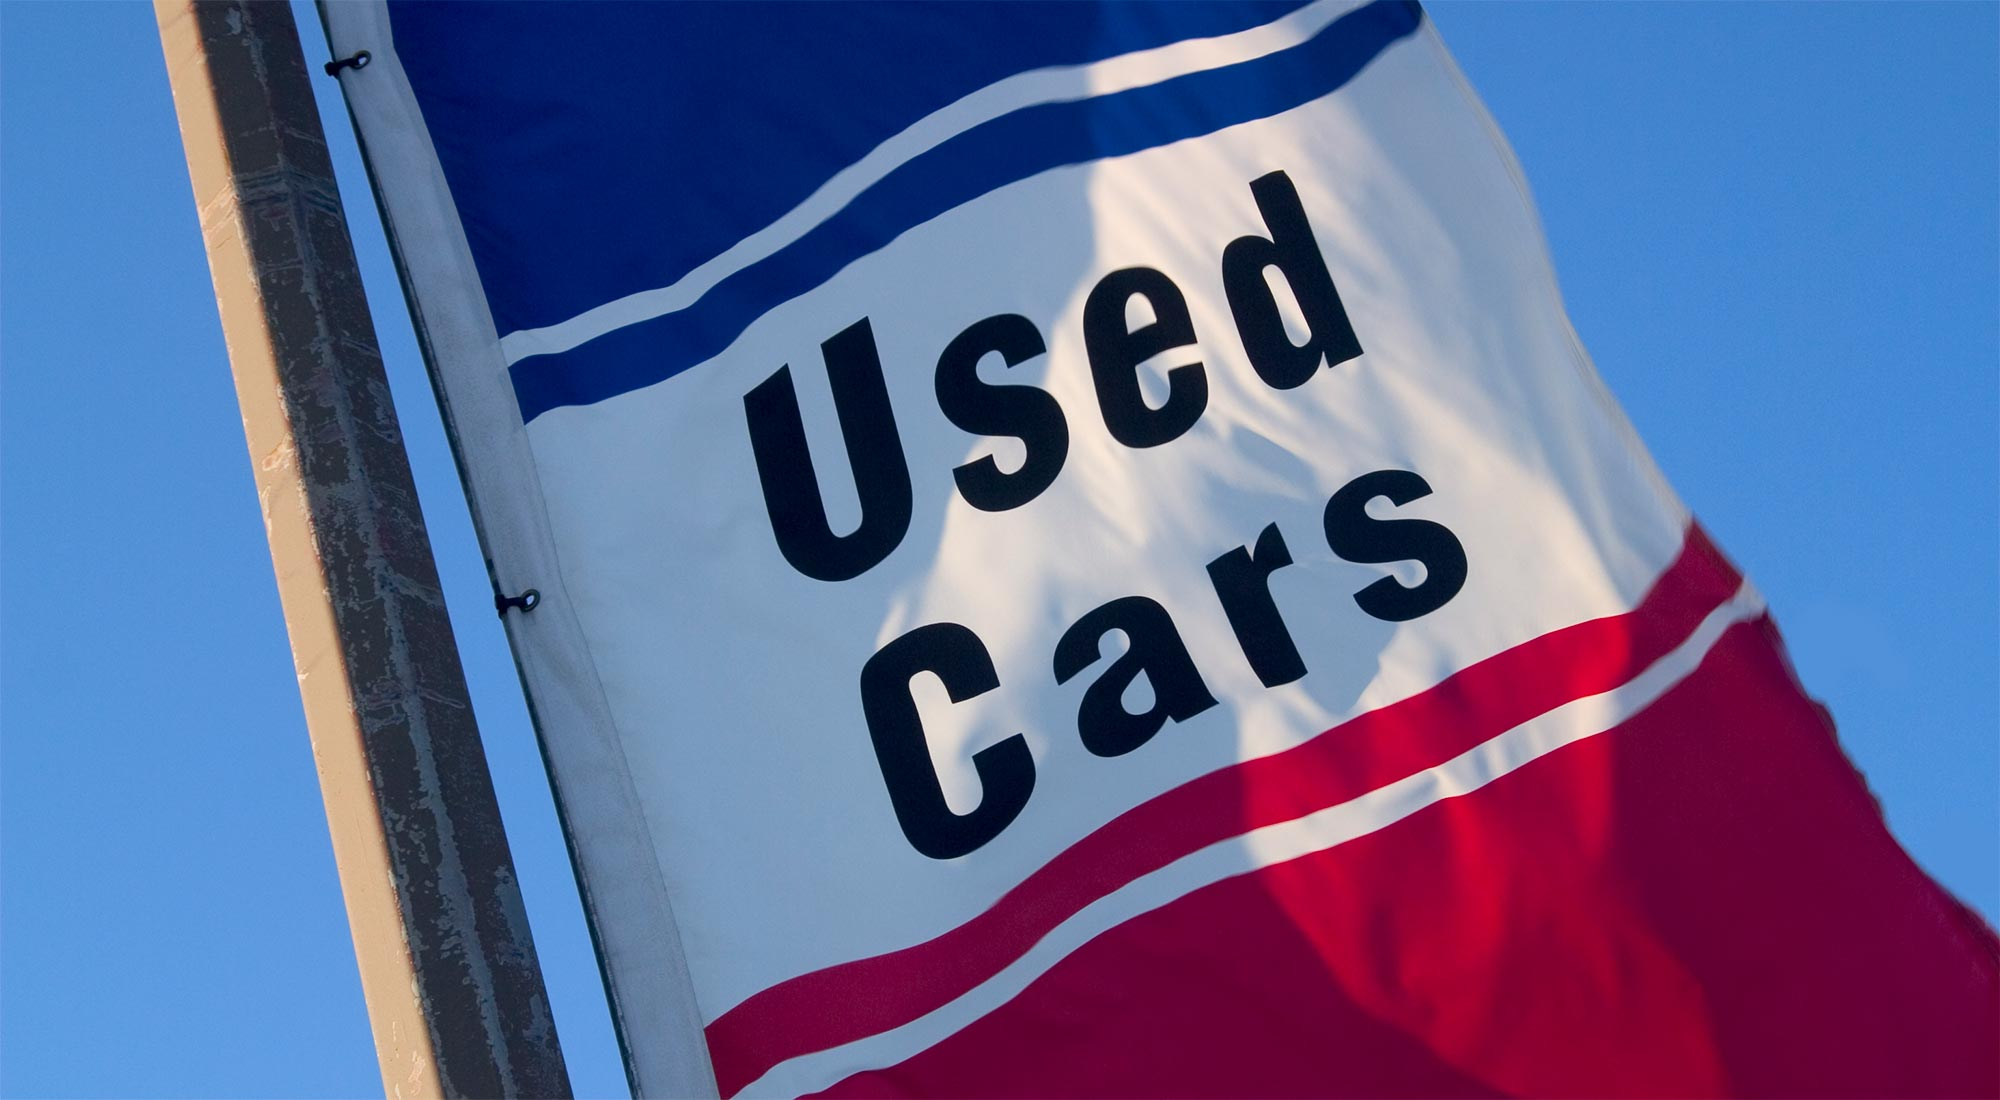 Used Car Loan Interest Rate What To Expect When Buying A Used